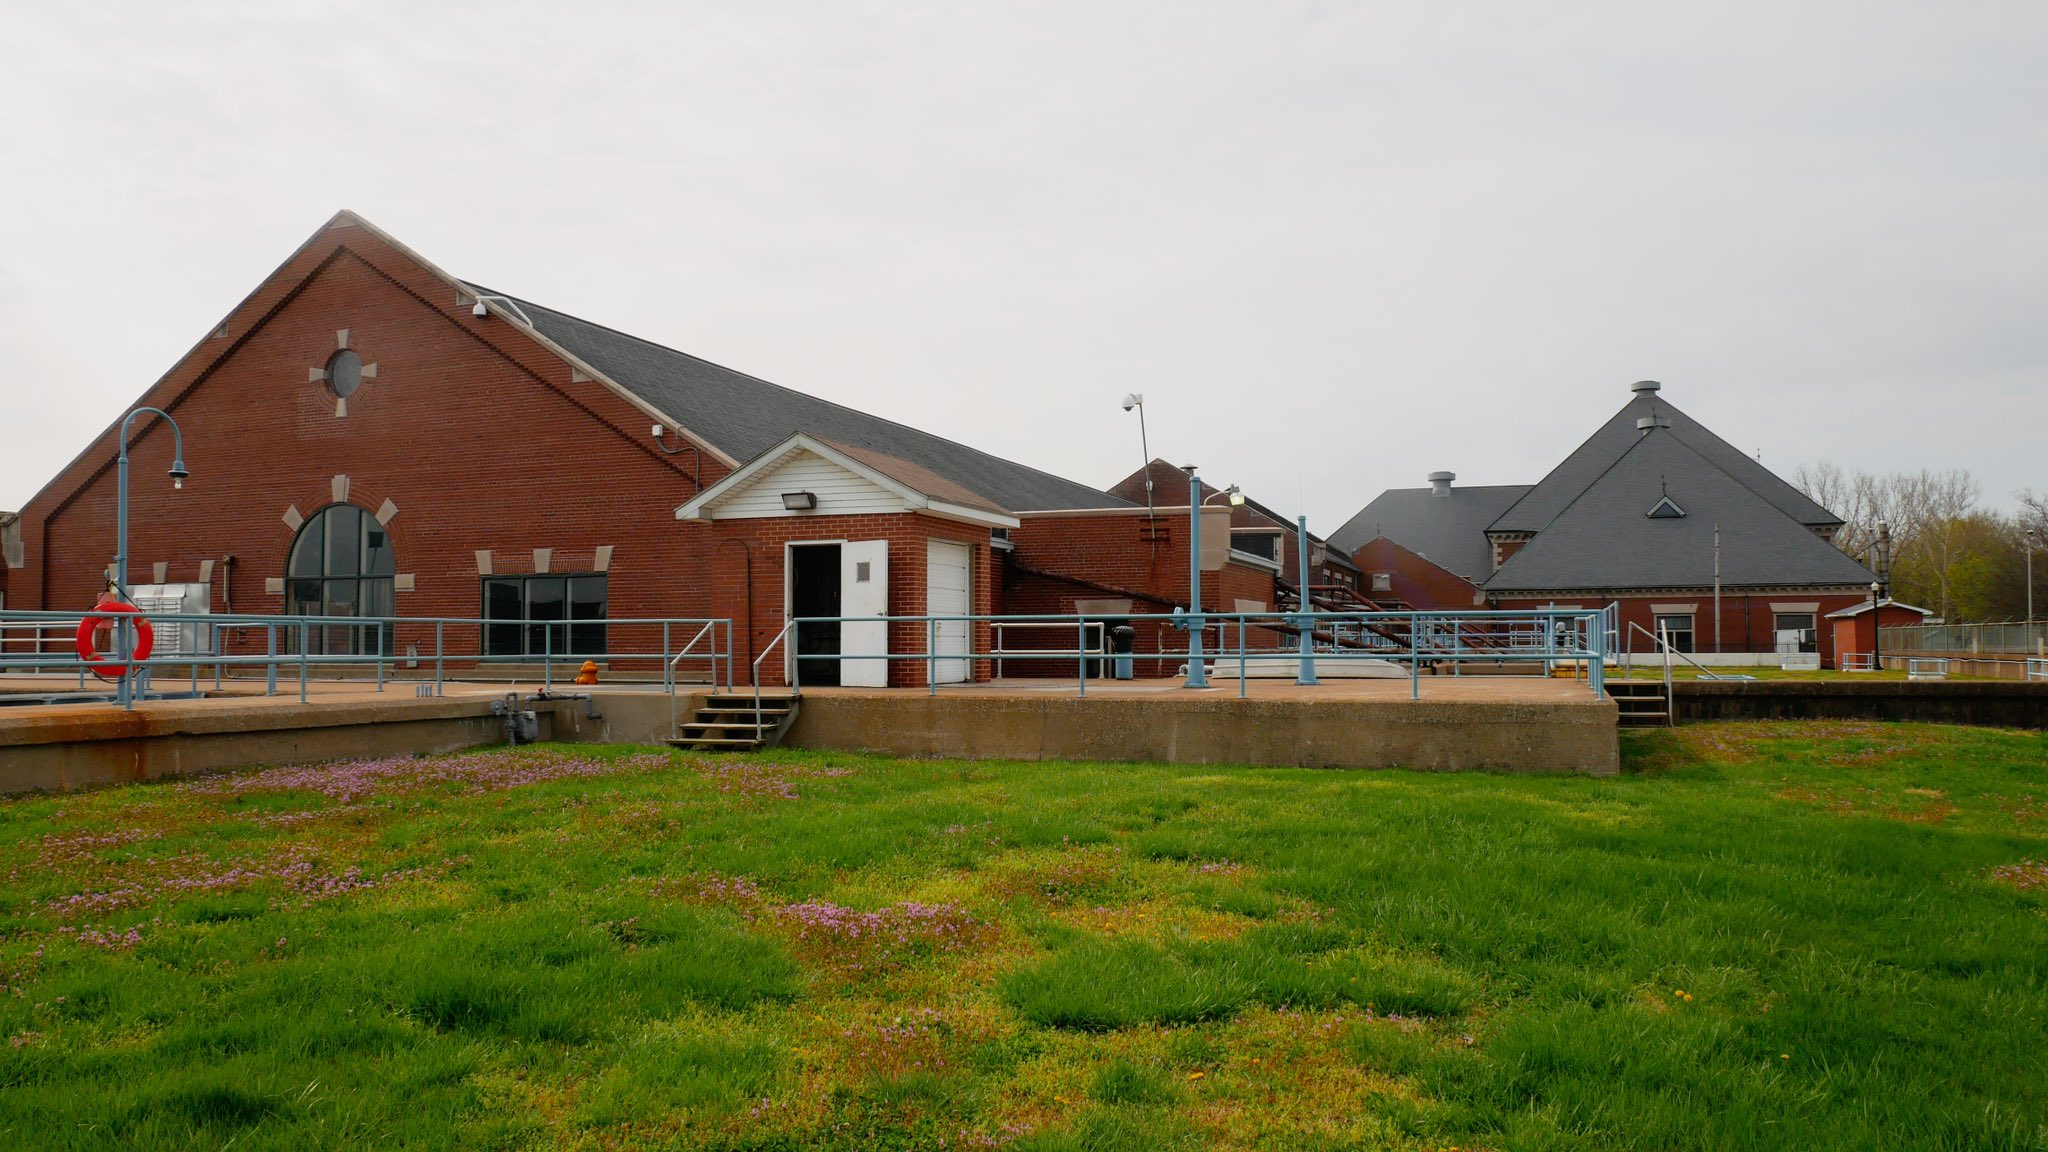 Current water treatment plant in Evansville